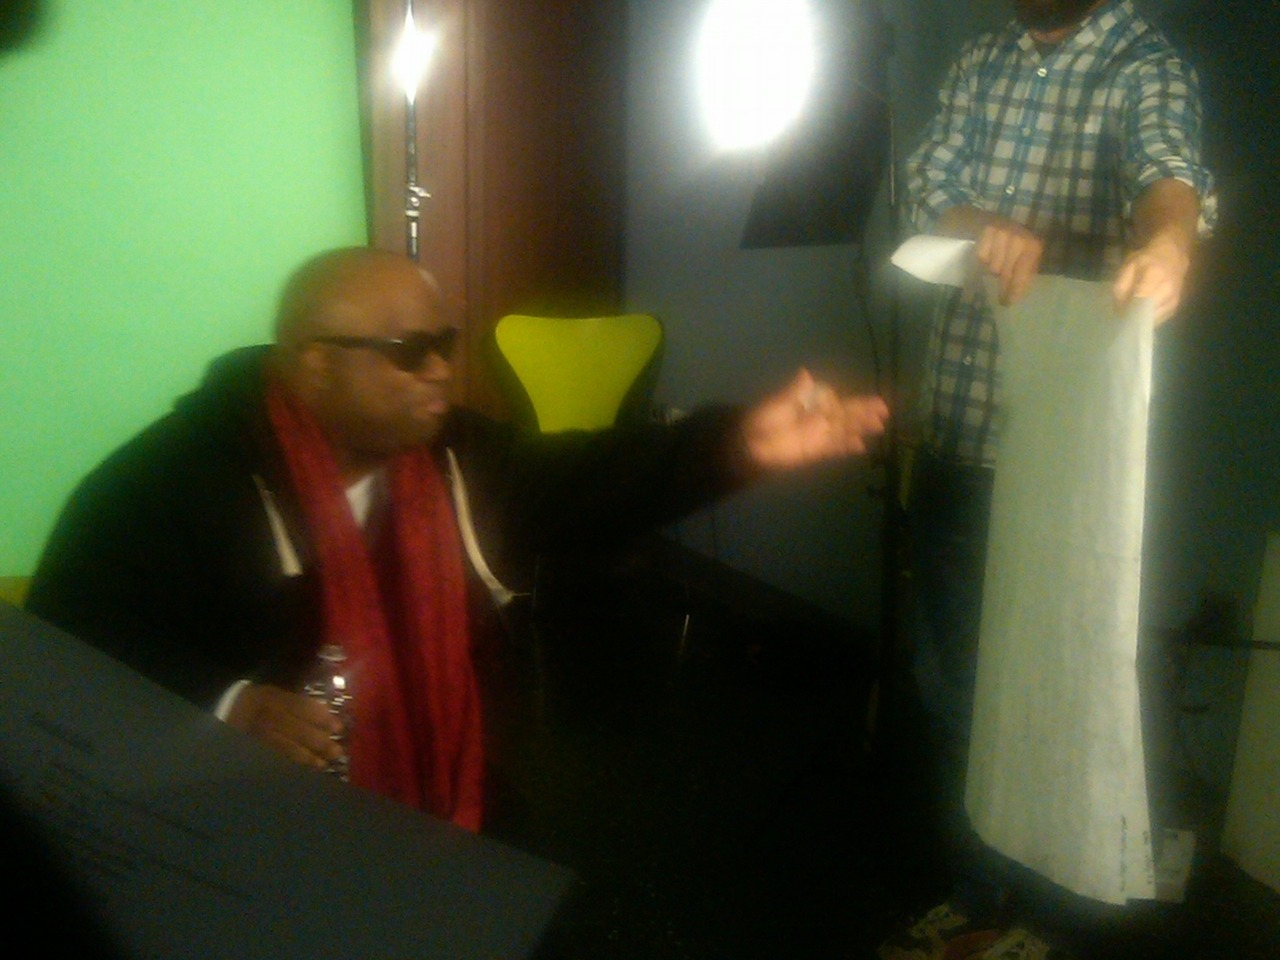 Cee Lo Spits. Take 1. posted.vh1.com